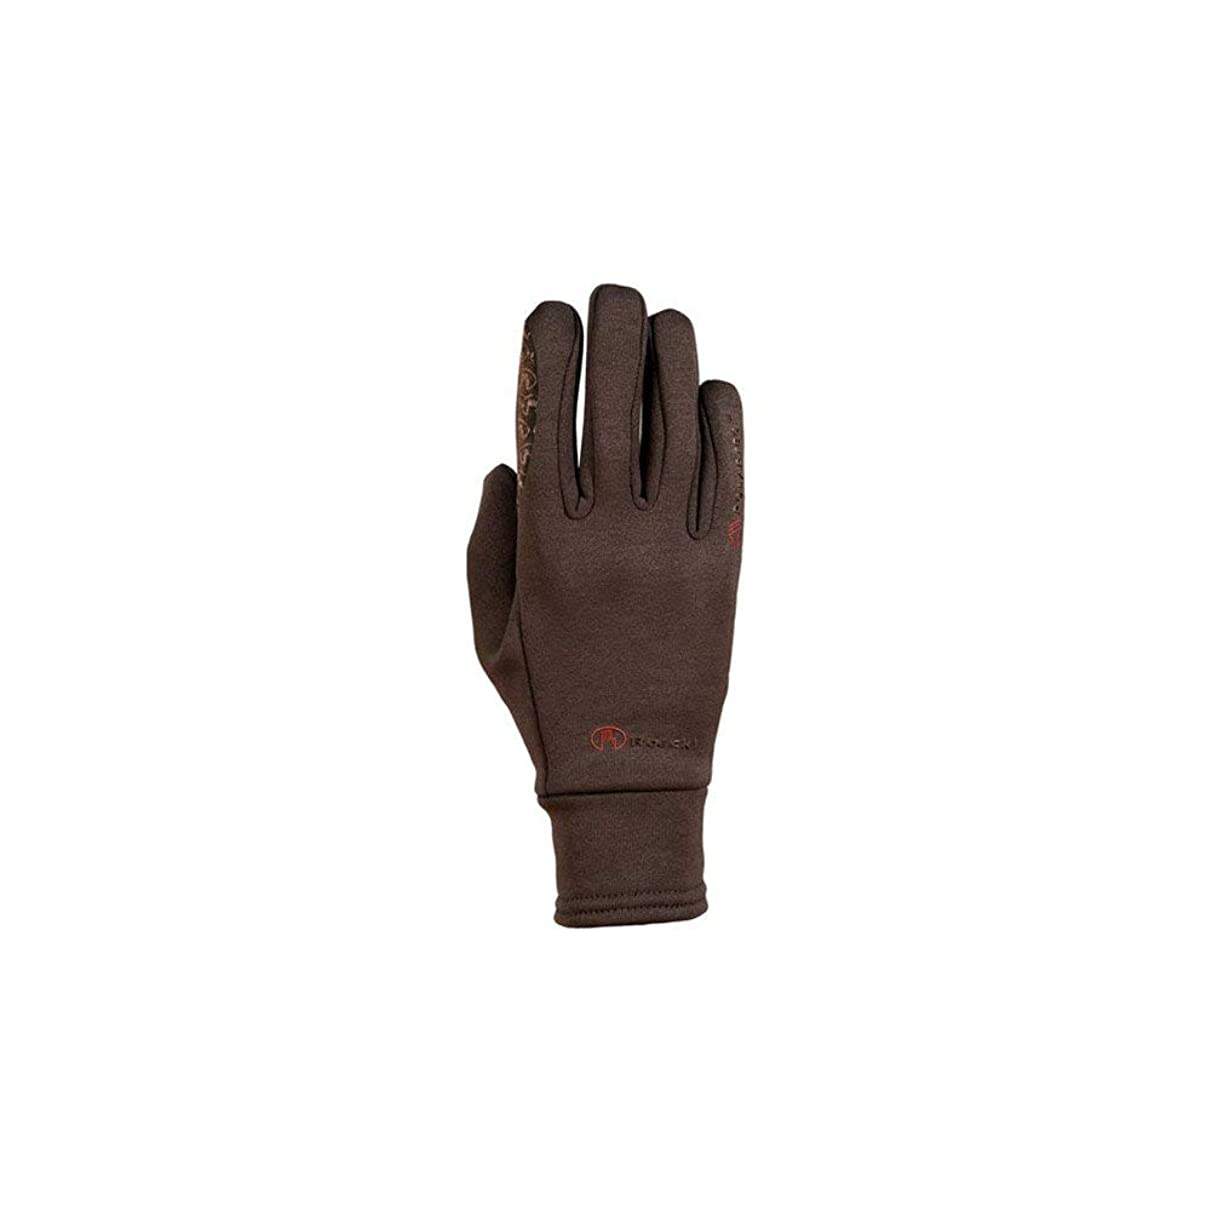 Roeckl Polartec Everyday Riding Glove 6.5 inches brown